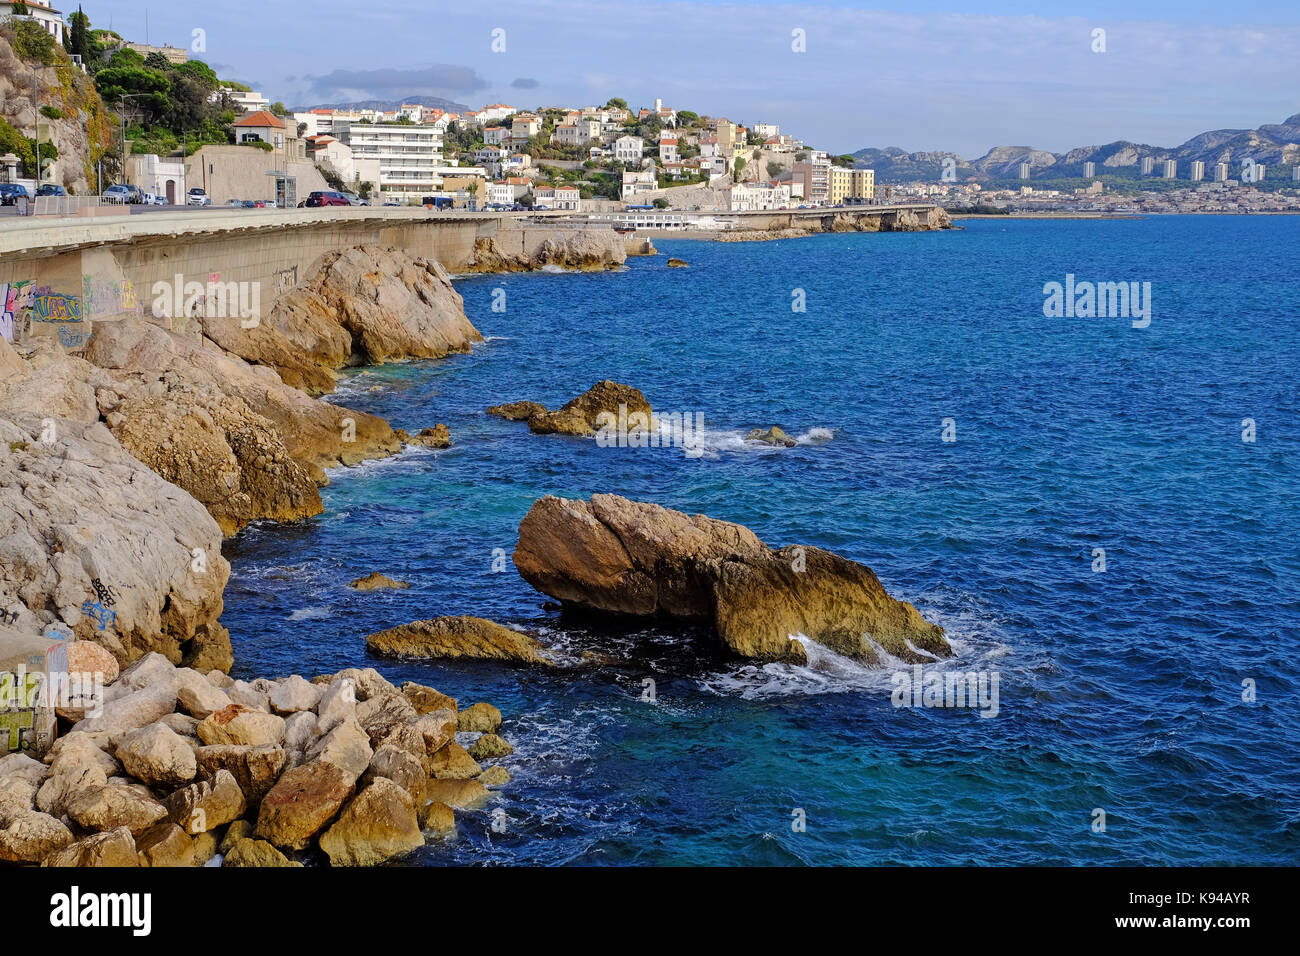 The Corniche road along the Mediterranean sea in Marseilles, Provence, South of France - Stock Image